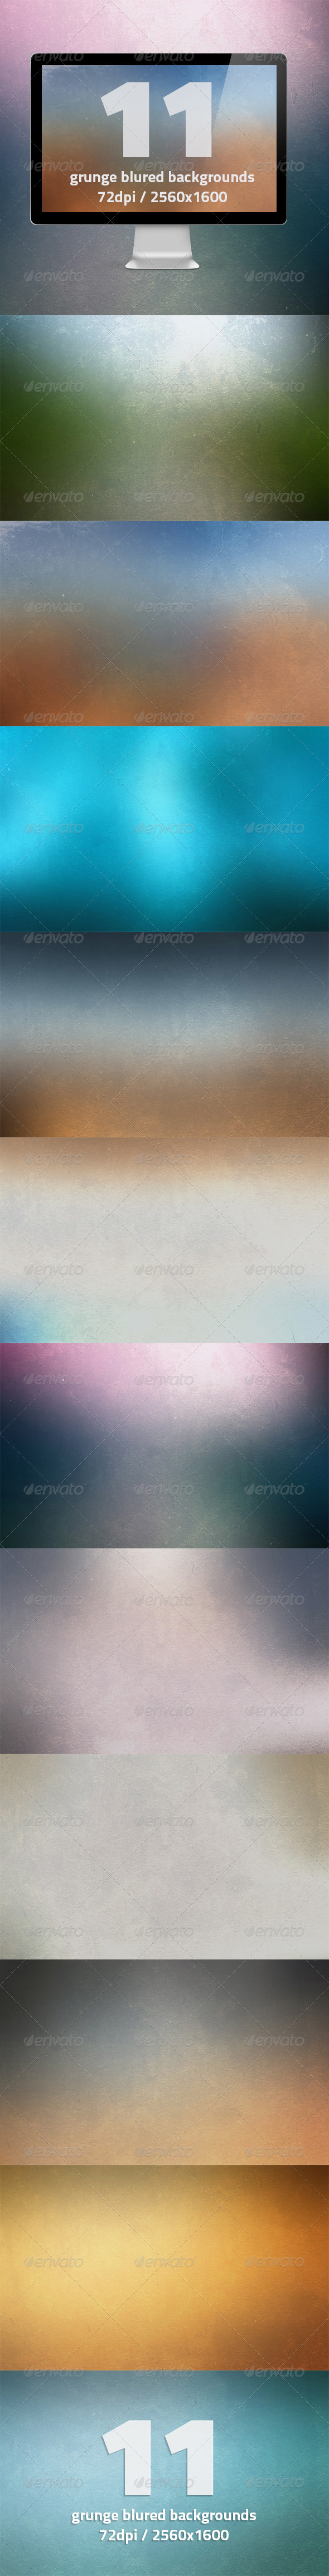 11 HQ Grunge Blurred Backgrounds - Abstract Backgrounds